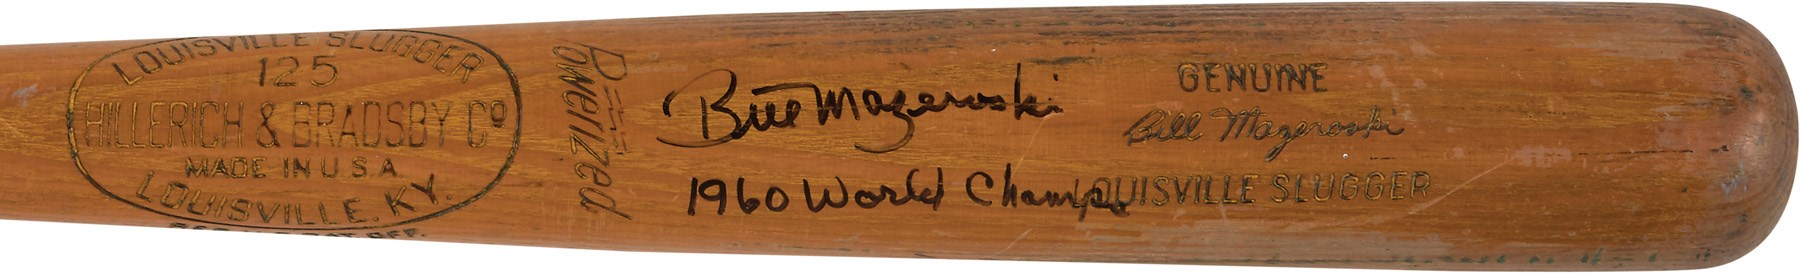 Circa 1960 Bill Mazeroski Signed Game Used Bat